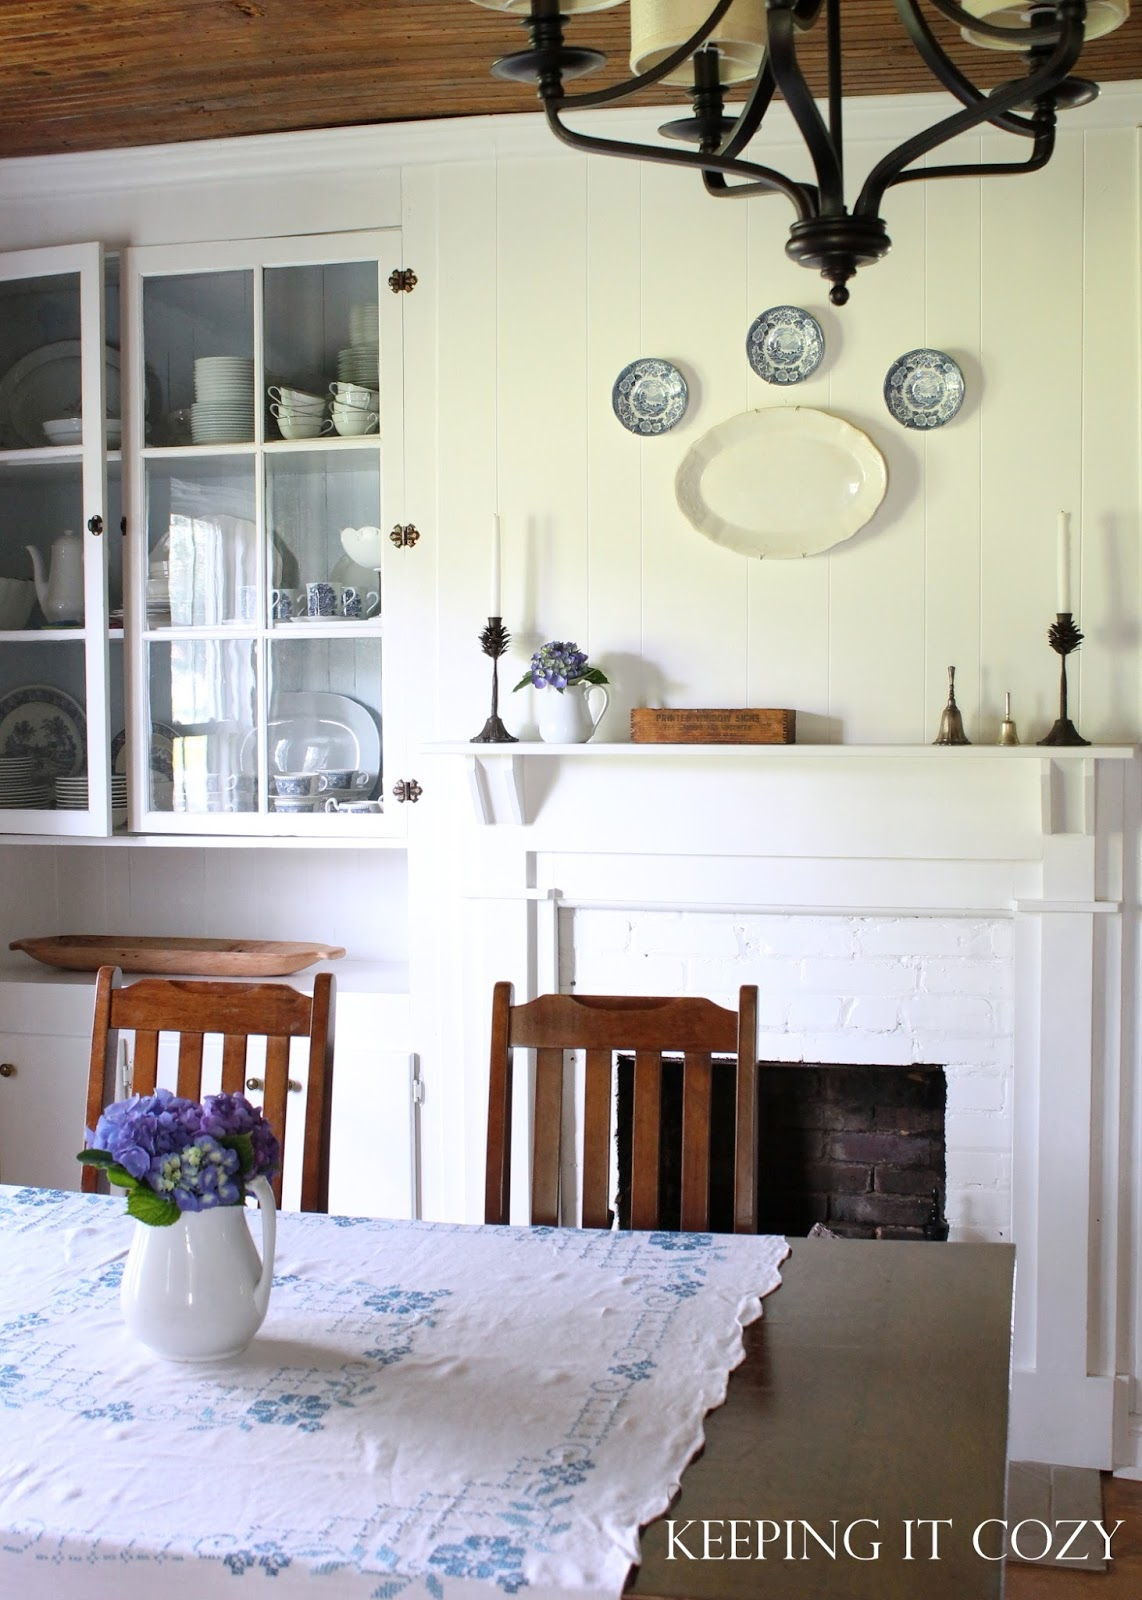 Keeping It Cozy: Summer Blues (In The Dining Room